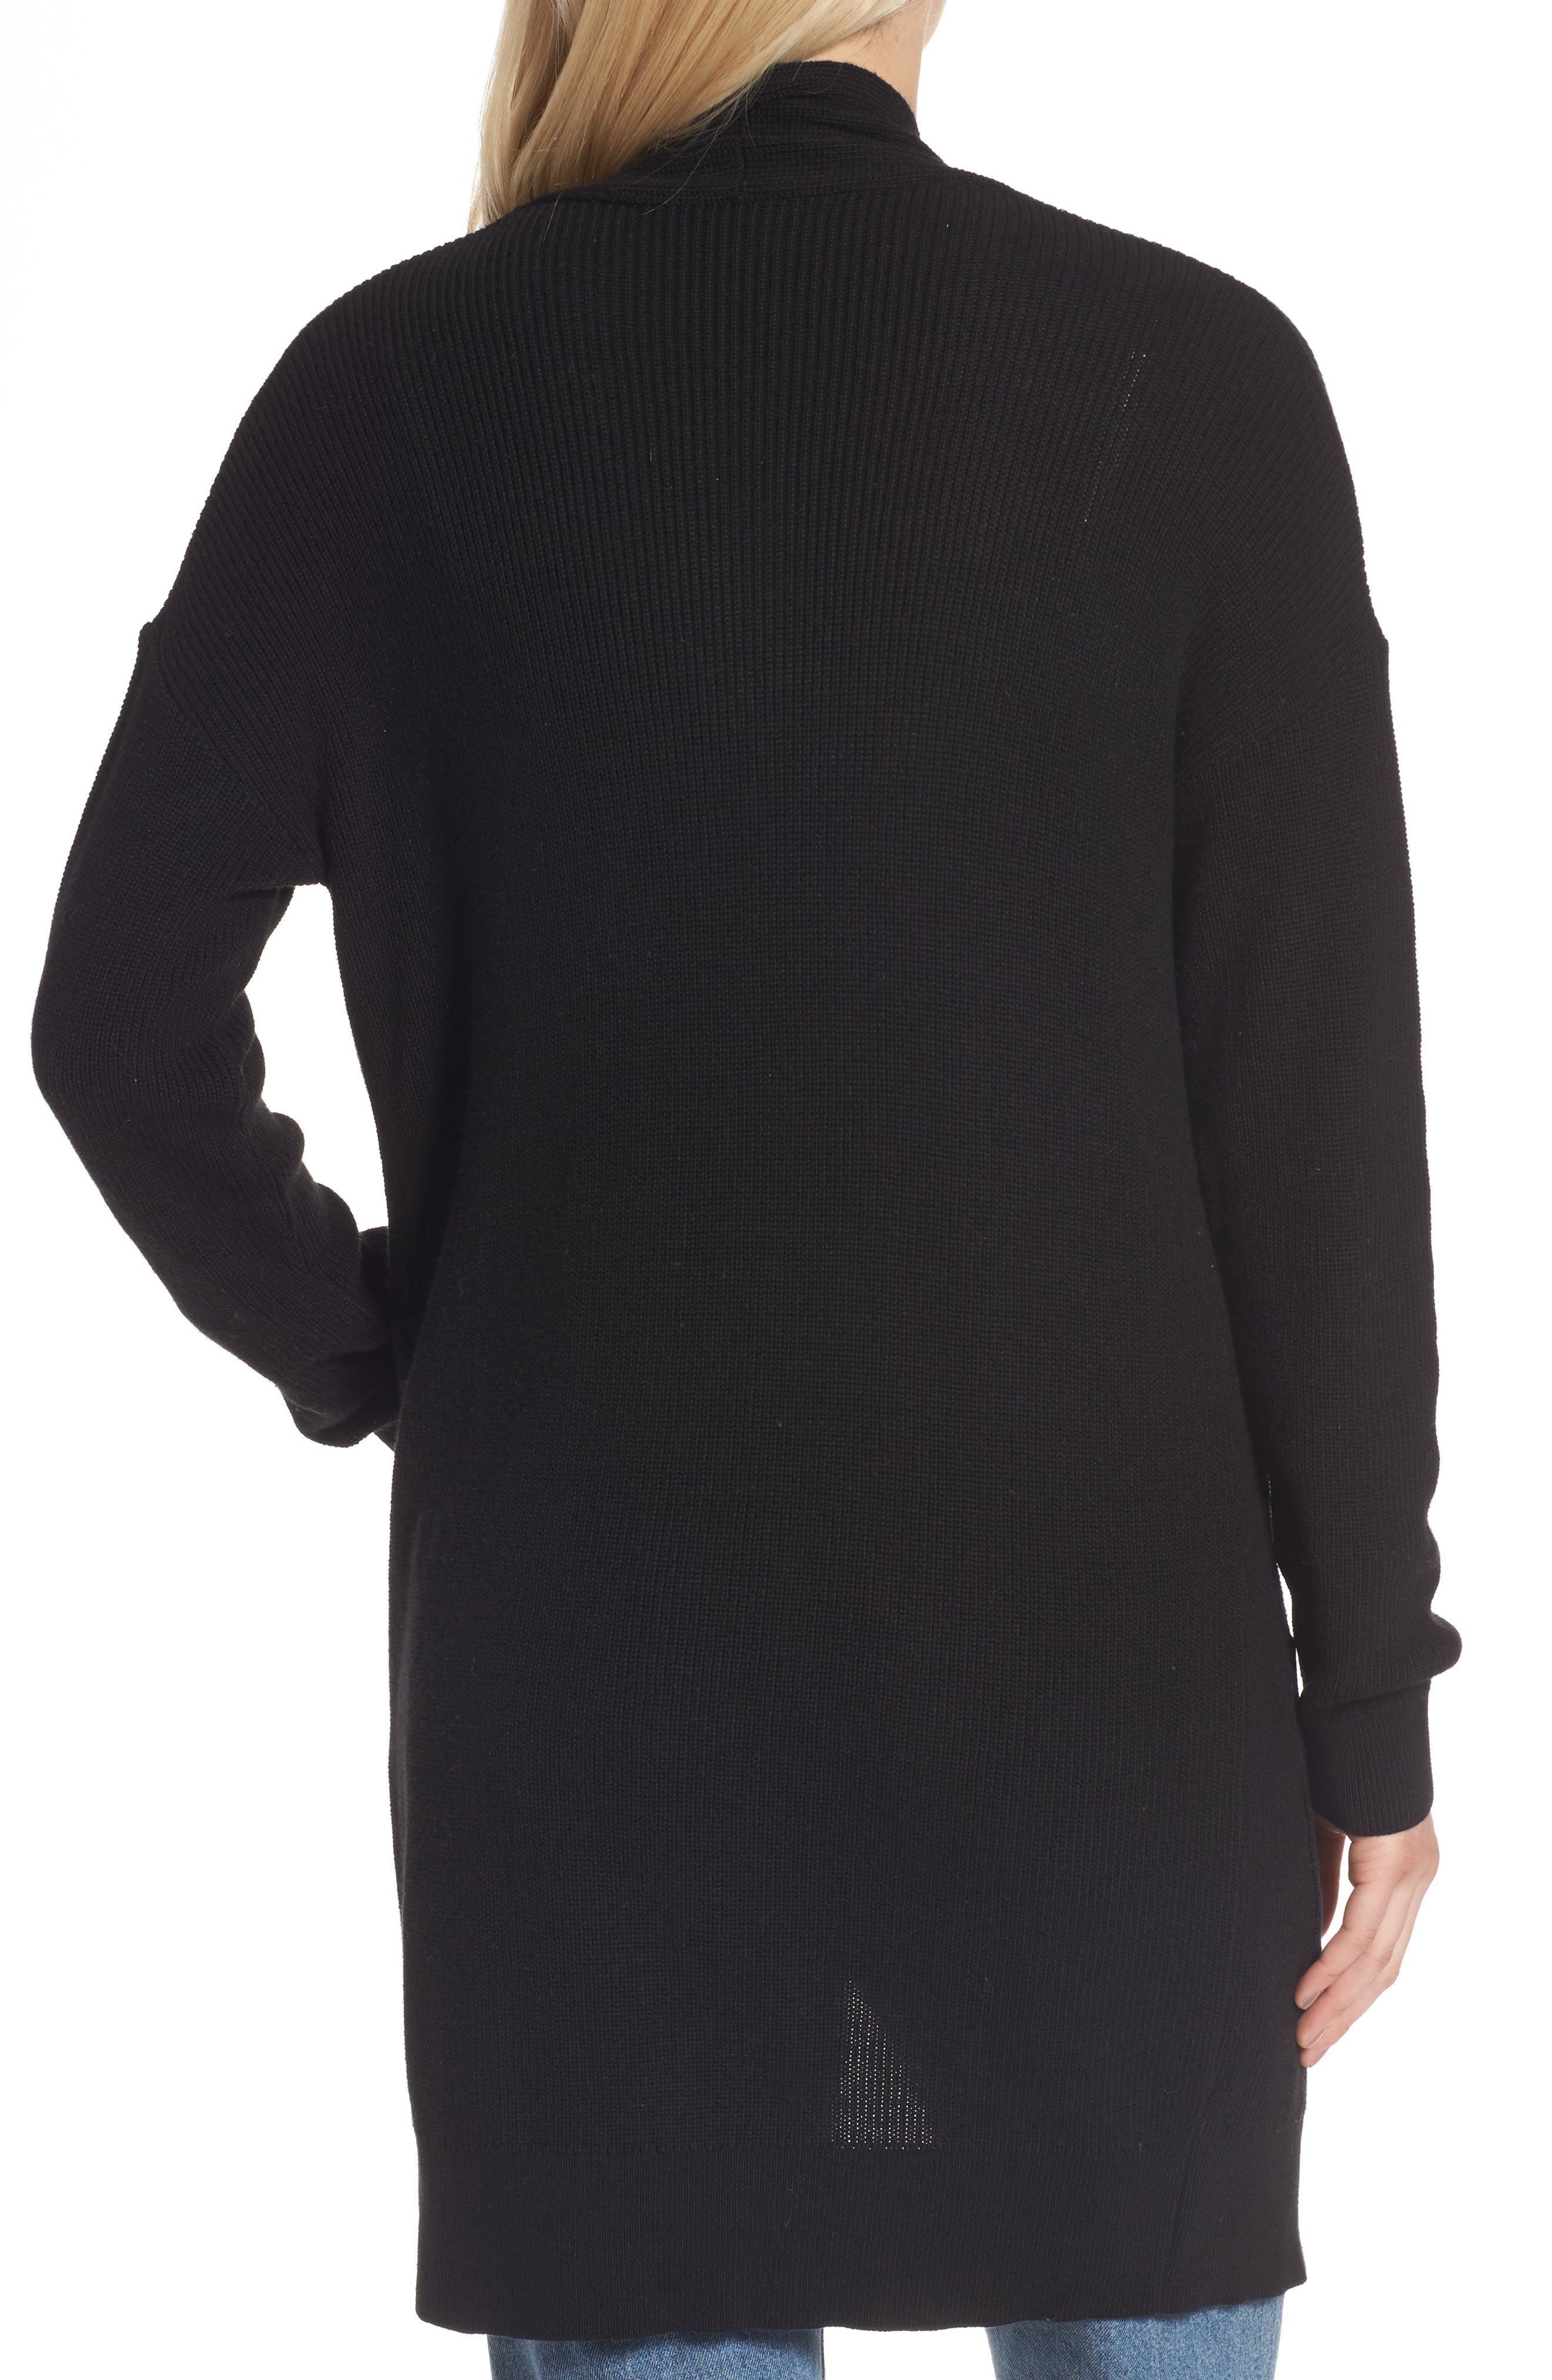 Cardigan Sweaters & Sweatshirts, Cowl Necks, Cable Knits | Nordstrom